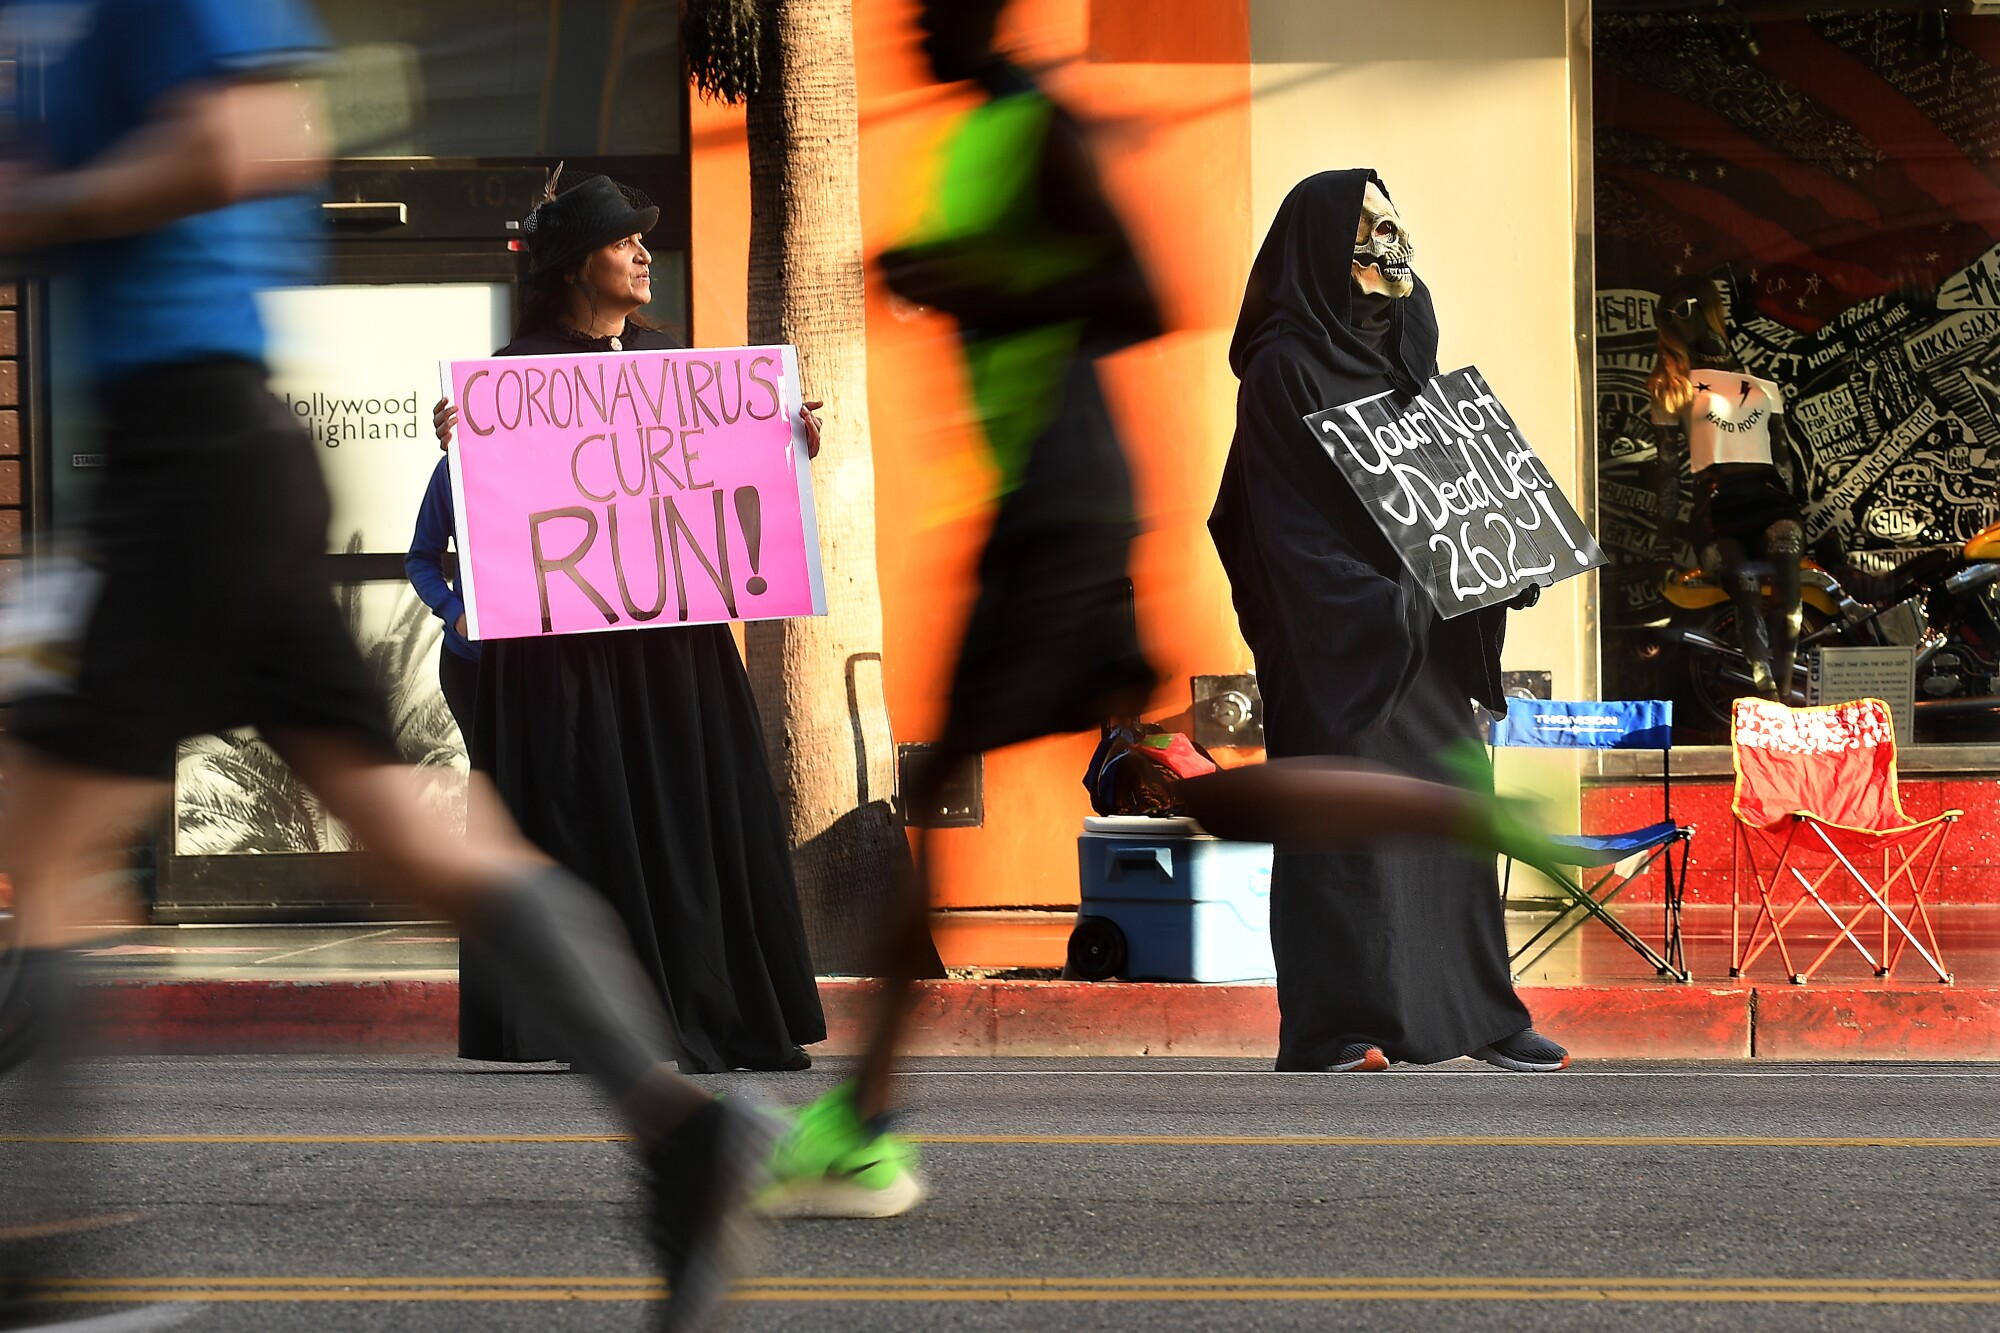 Janette Cardona and her husband, Louie, hold signs along Hollywood Blvd. as runners compete during L.A. Marathon.